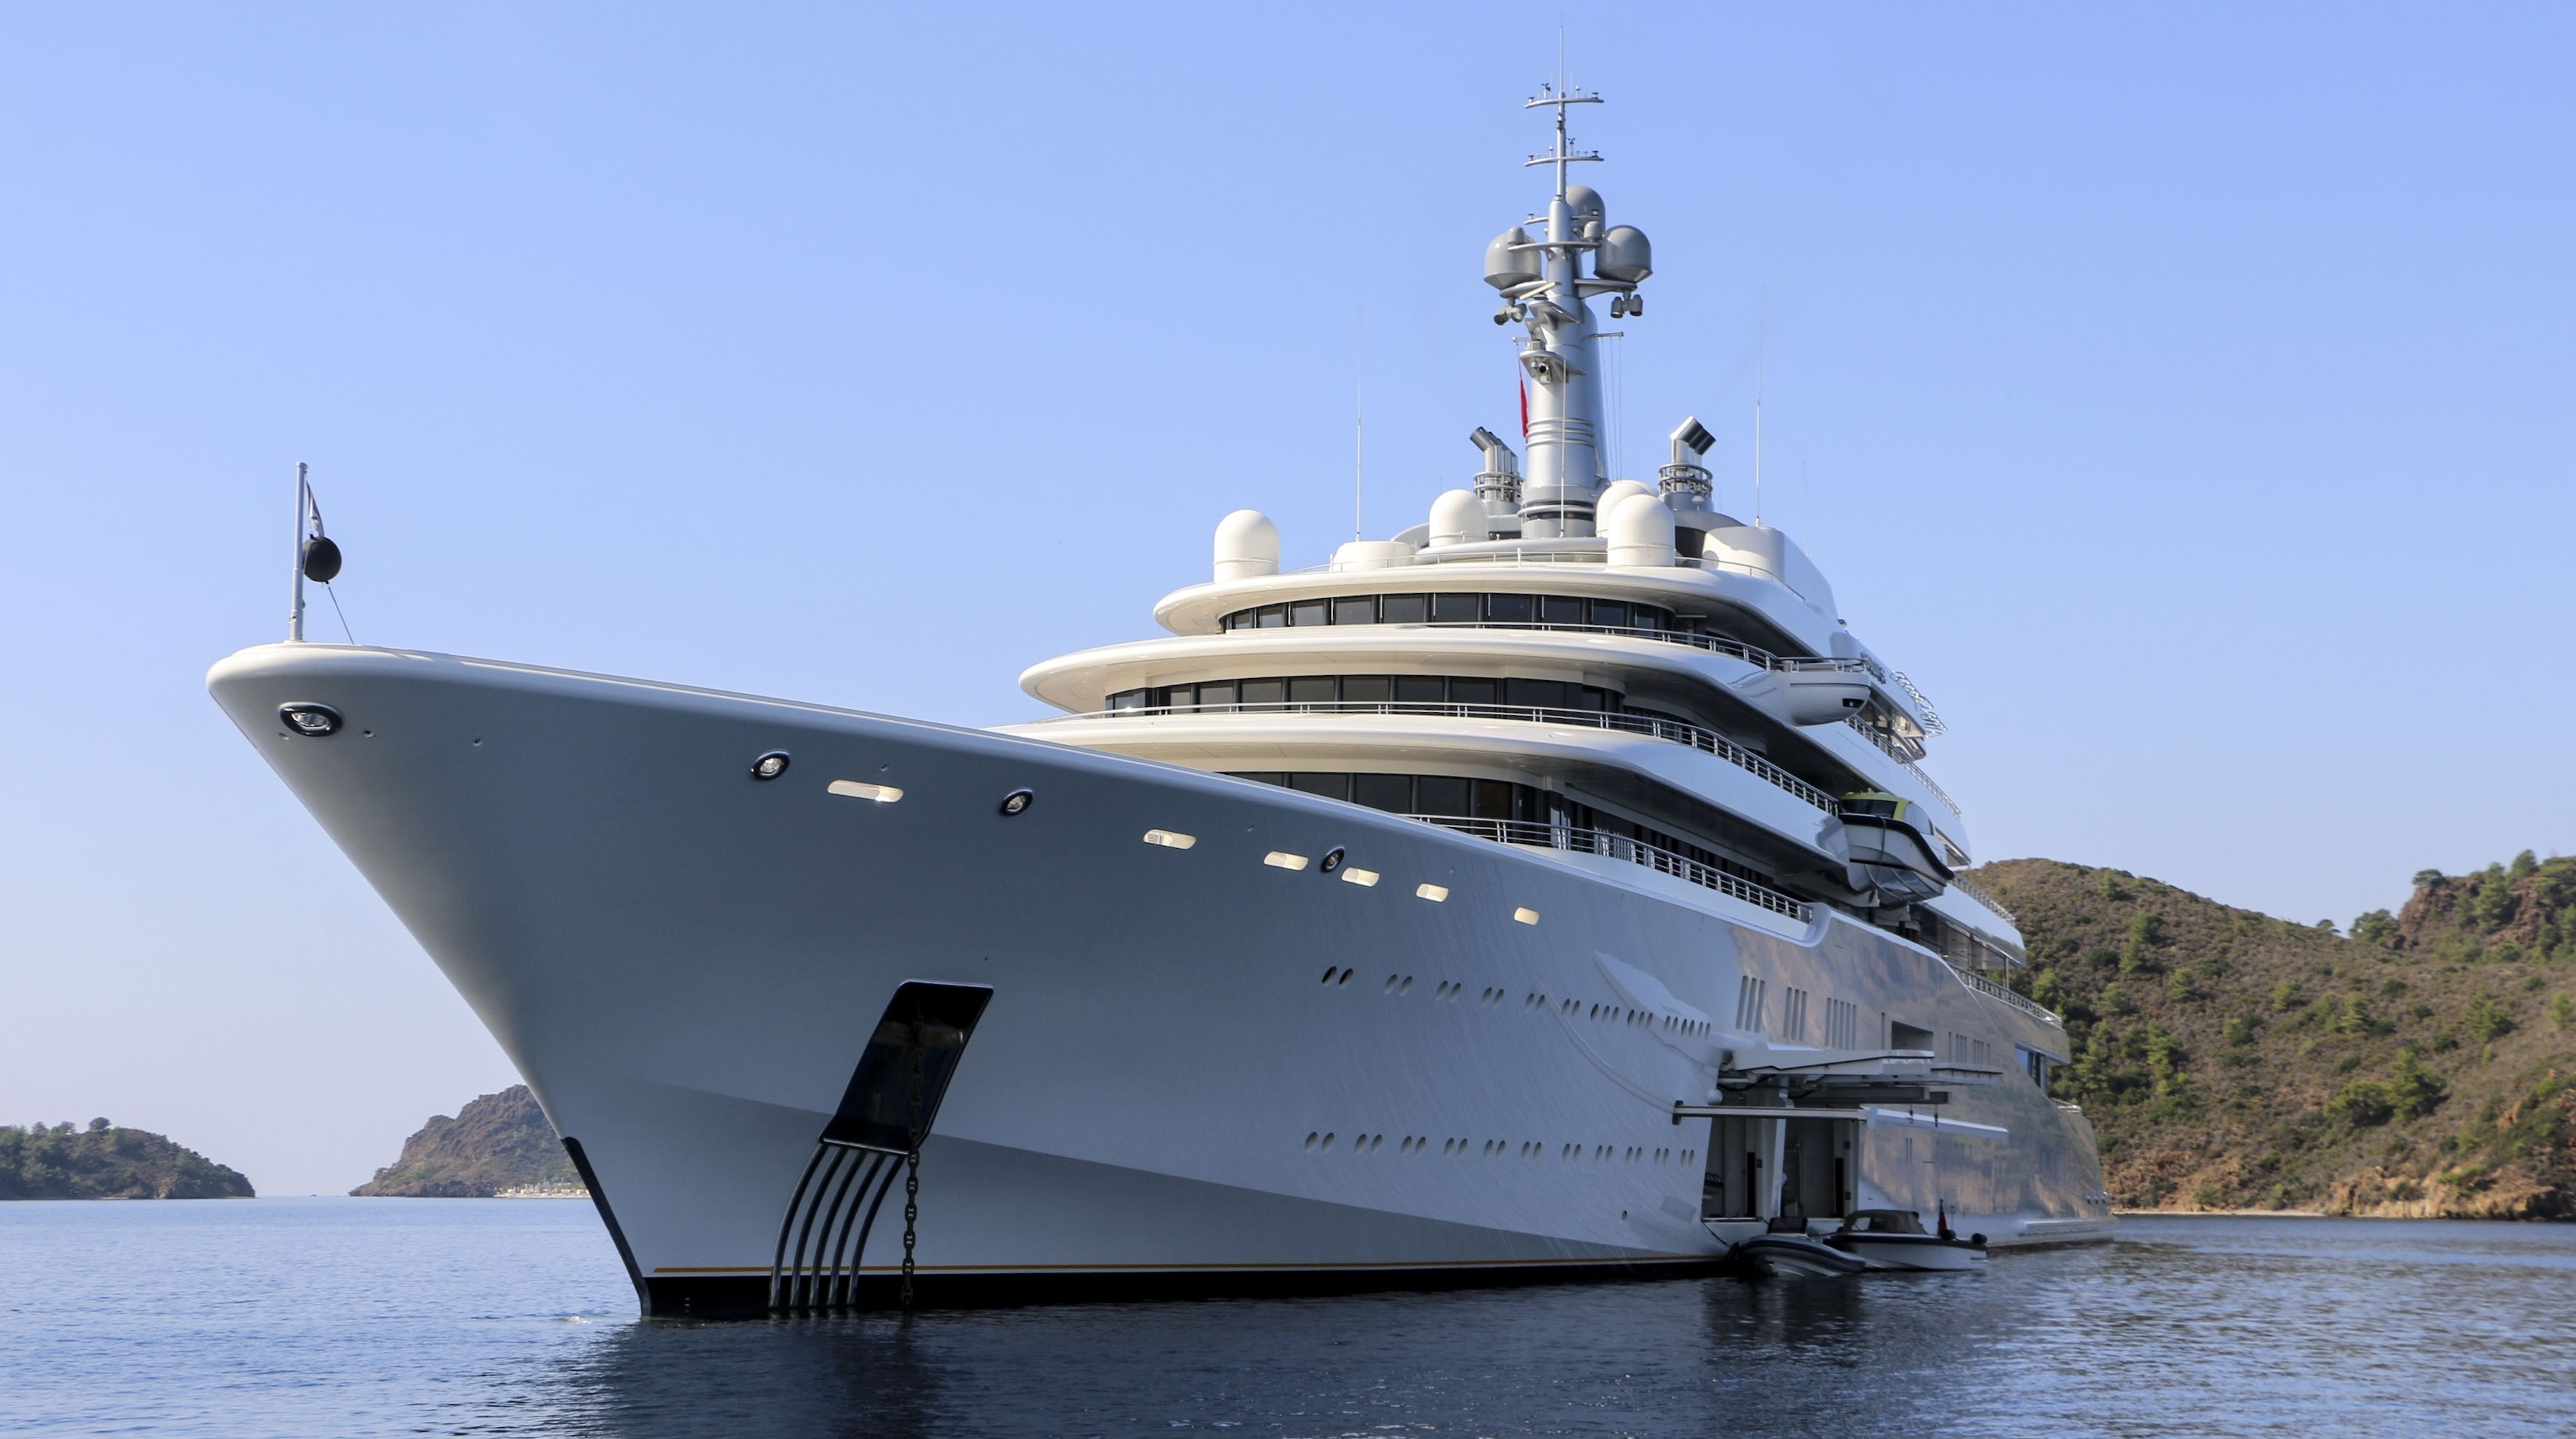 Eclipse, the private luxury yacht of Russian billionaire Roman Abramovich, anchors at Hisaronu Bay in Marmaris district of Mugla, southwestern Turkey on October 19, 2015. The 163-meter-long Eclipse, world's second largest private yacht, has two helicopter pads, 24 guest cabins, two swimming pools, a disco hall, a movie theater and two mini-submarines.